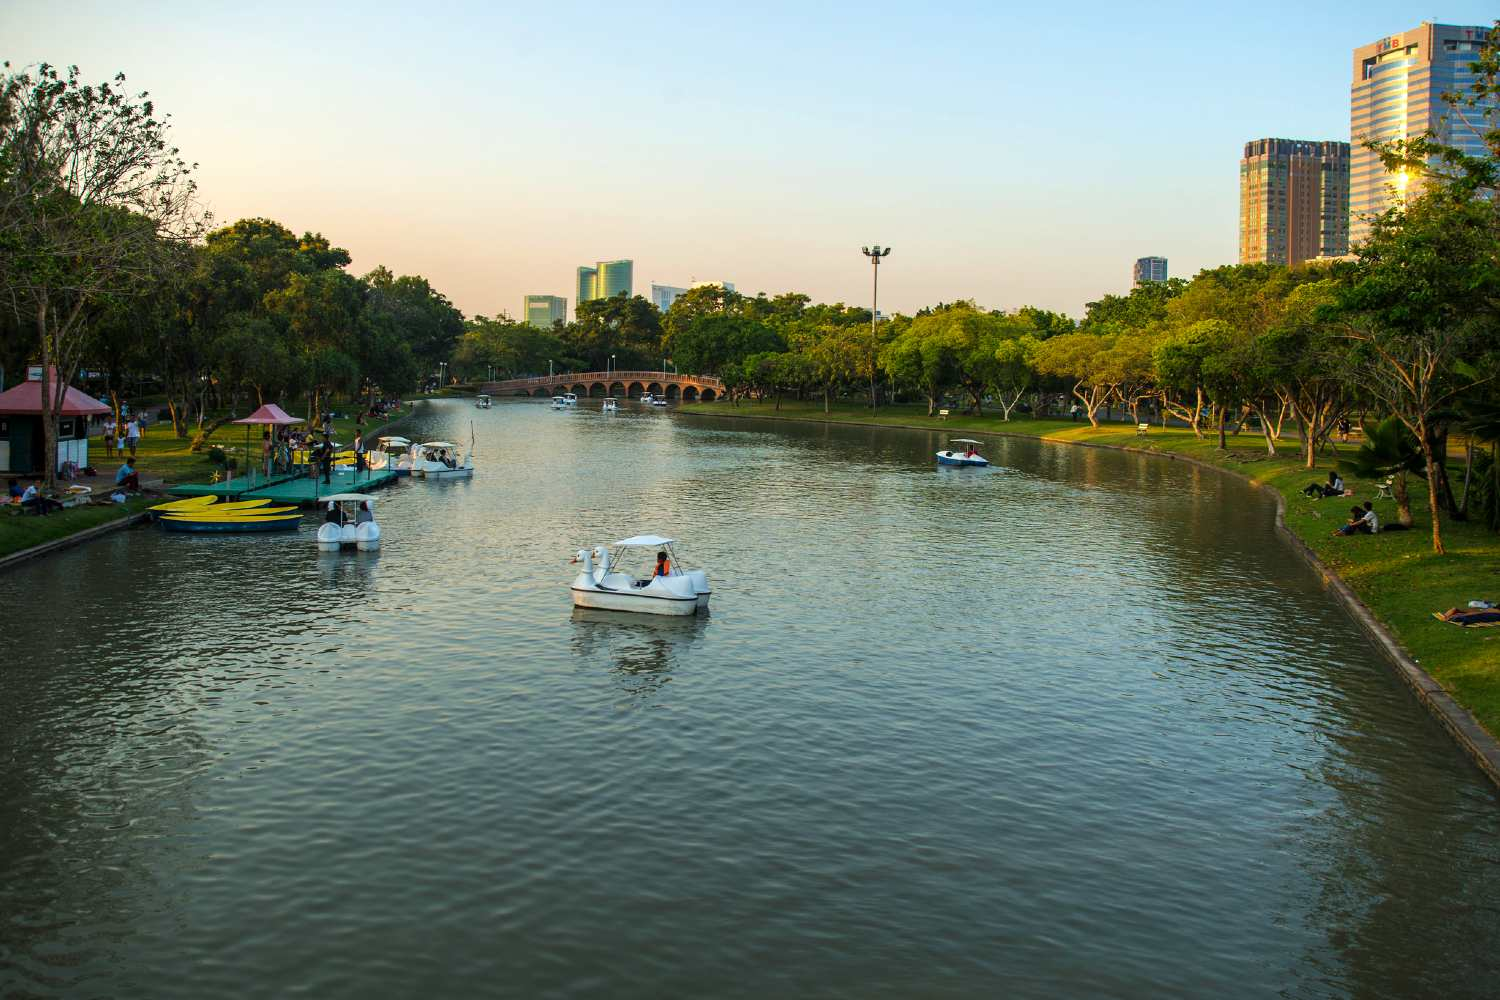 Swan boat in the water of the Chatuchak Park in Bangkok